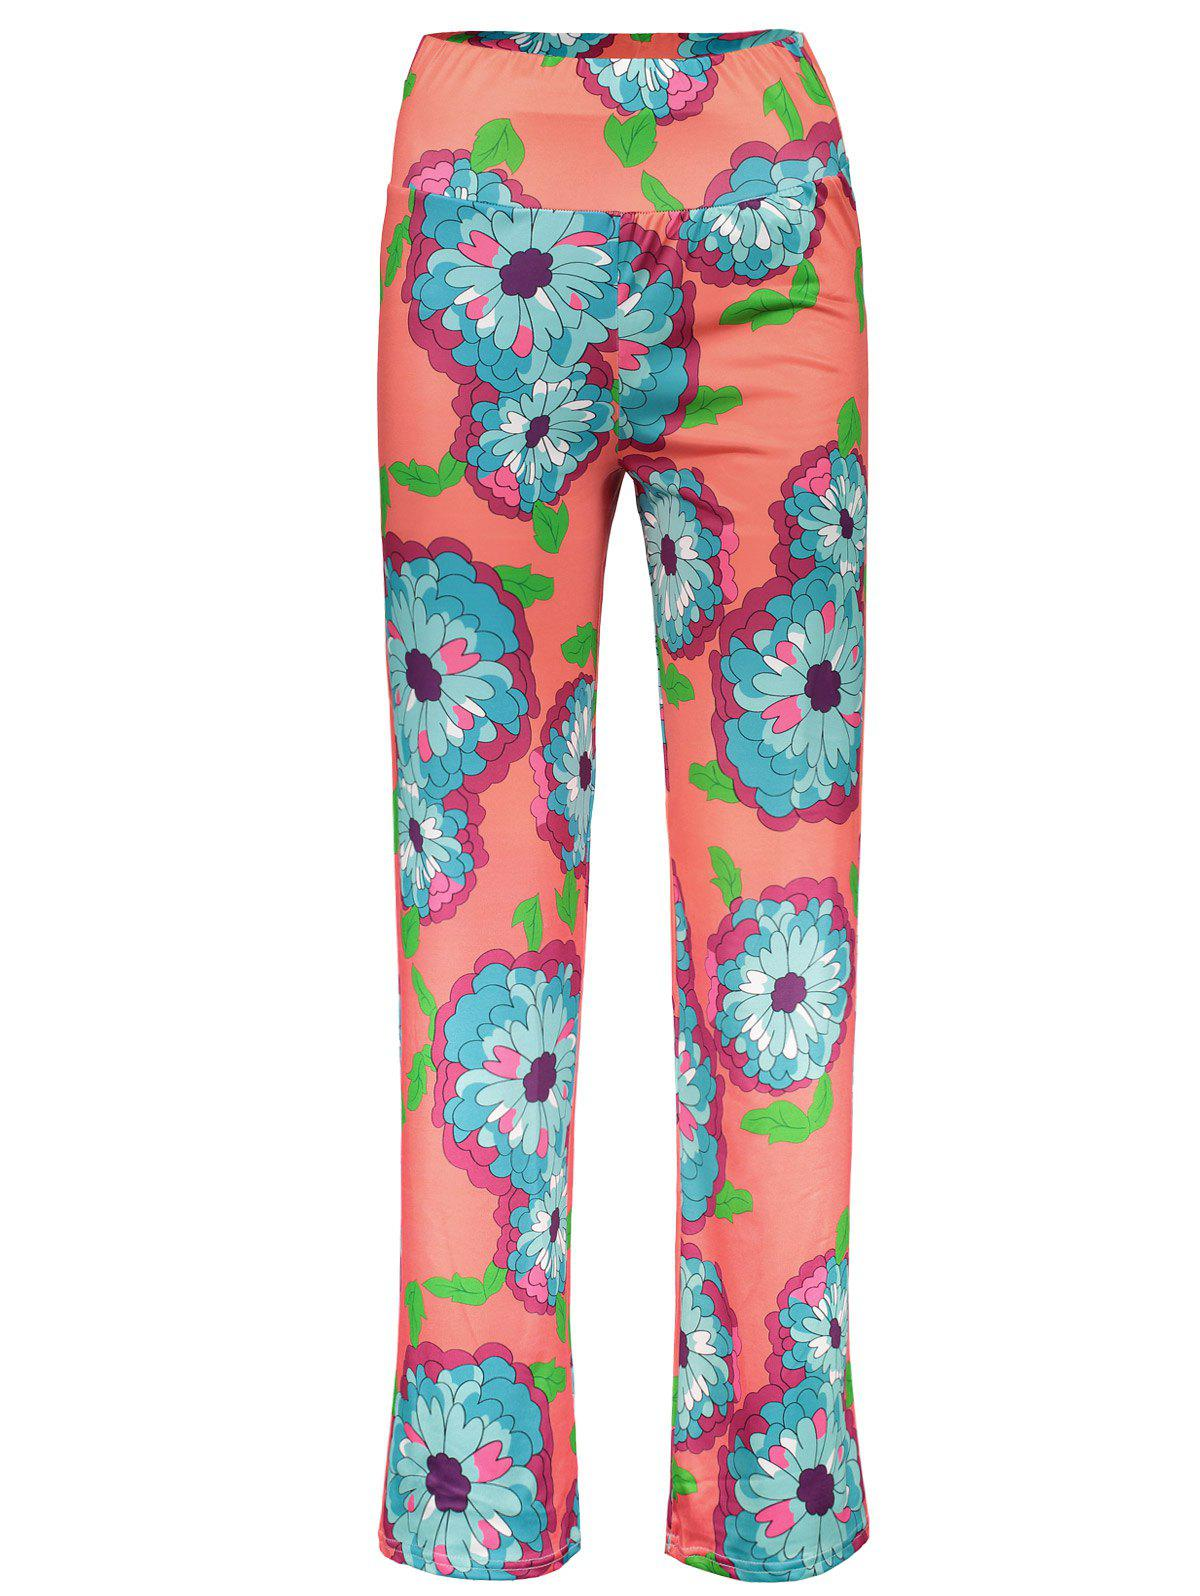 Simple Me To A T And Thats Miss Cranky Pants To You Dont Get Me Wrong, These Are Good For Walking Around The House Inbut I Would Only Wear Them If They Read Sassy Pants Instead Of Cranky Pants Then Again, Im Forever Wearing My Invisible